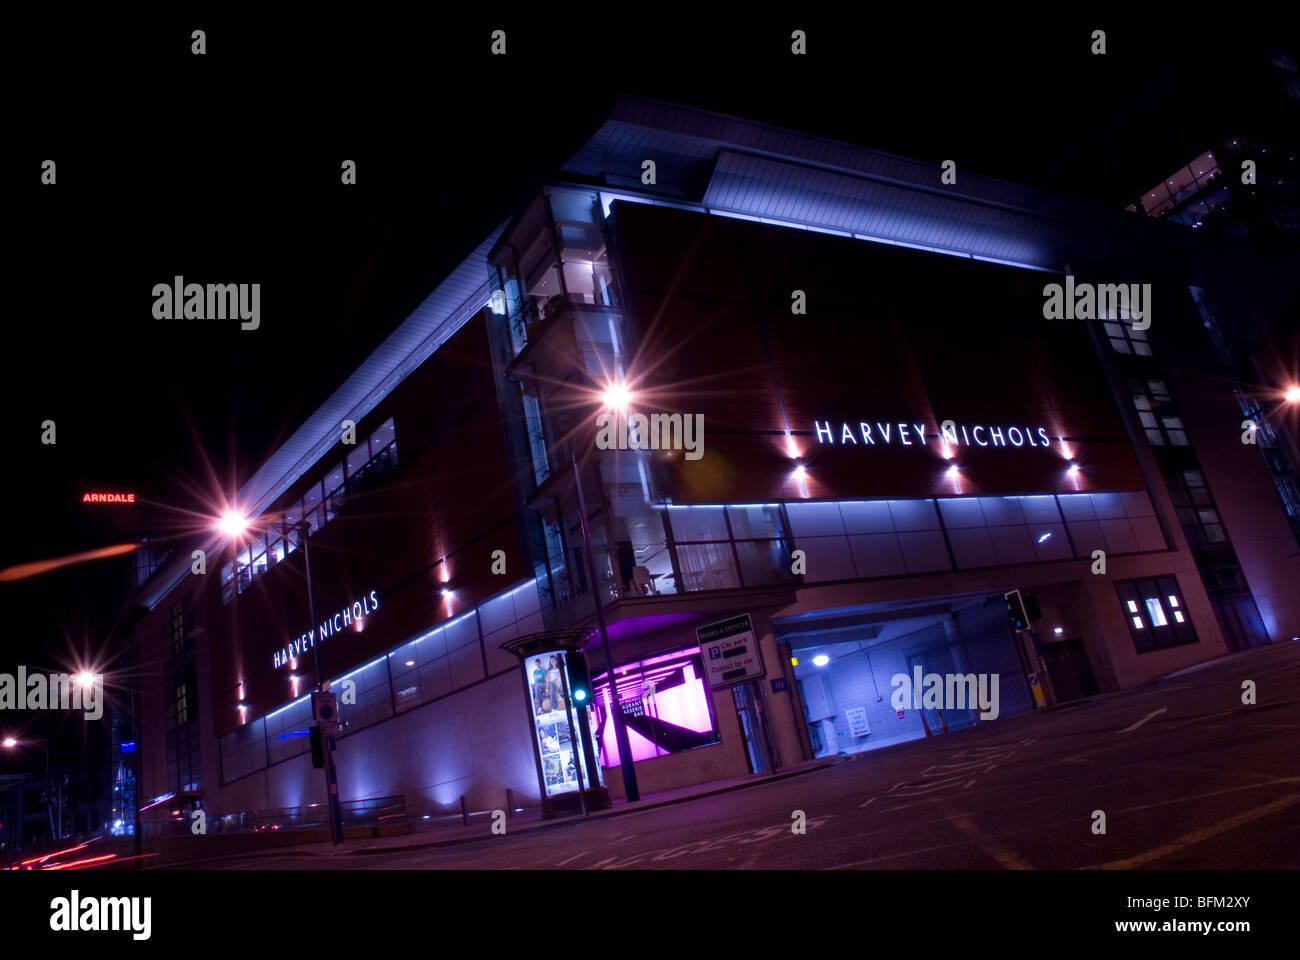 Harvey Nichols and the Arndale Centre at night, central Manchester, UK - Stock Image